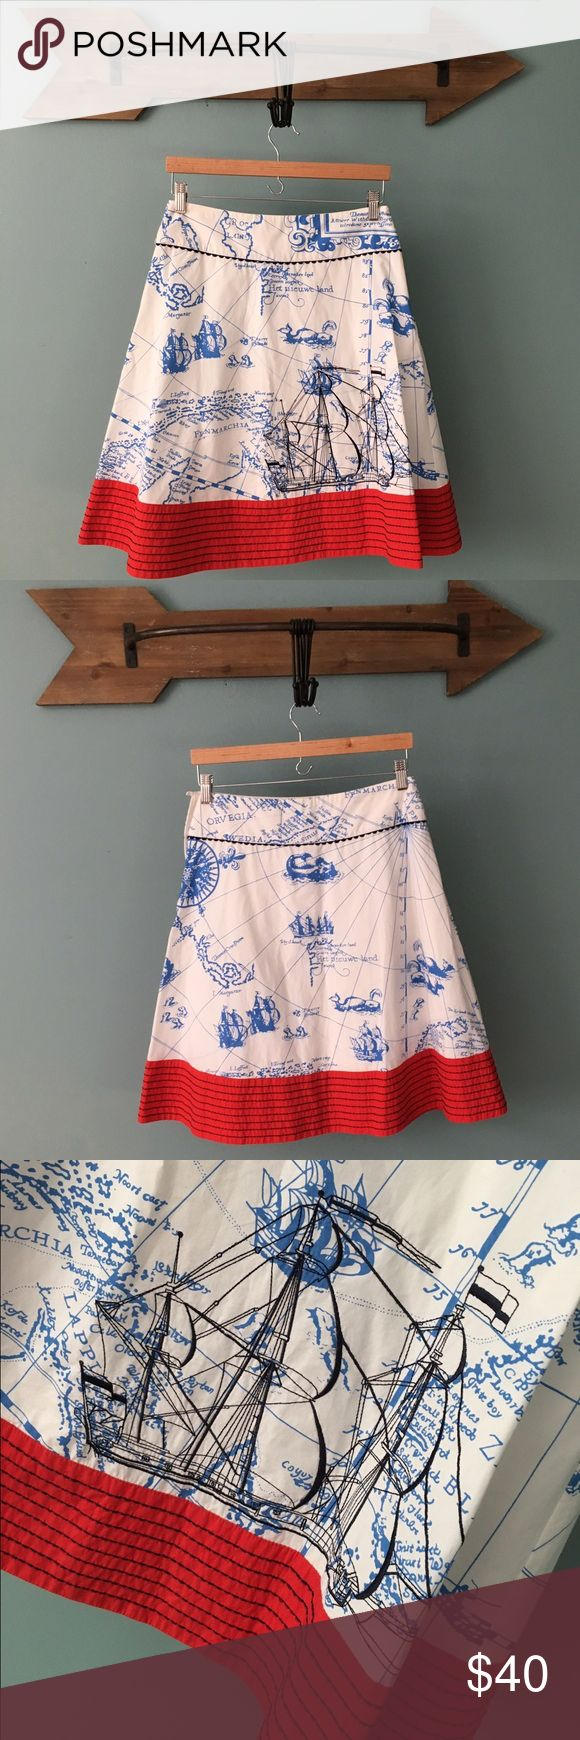 """RARE Anthropologie Lithe Seafarer's Map Skirt RARE Anthro Lithe Seafarer's Map Skirt.   From the Anthro Archive Website:  An embroidered schooner sails through periwinkle oceans on crisp cotton poplin, buoyed by a vivid red border. By Lithe. Side zip Cotton; cotton lining Machine wash 23""""L  🚭Nonsmoking Home. ✅Pet friendly, we have a Morkie. 🚫Sorry No Trading. Anthropologie Skirts Midi"""